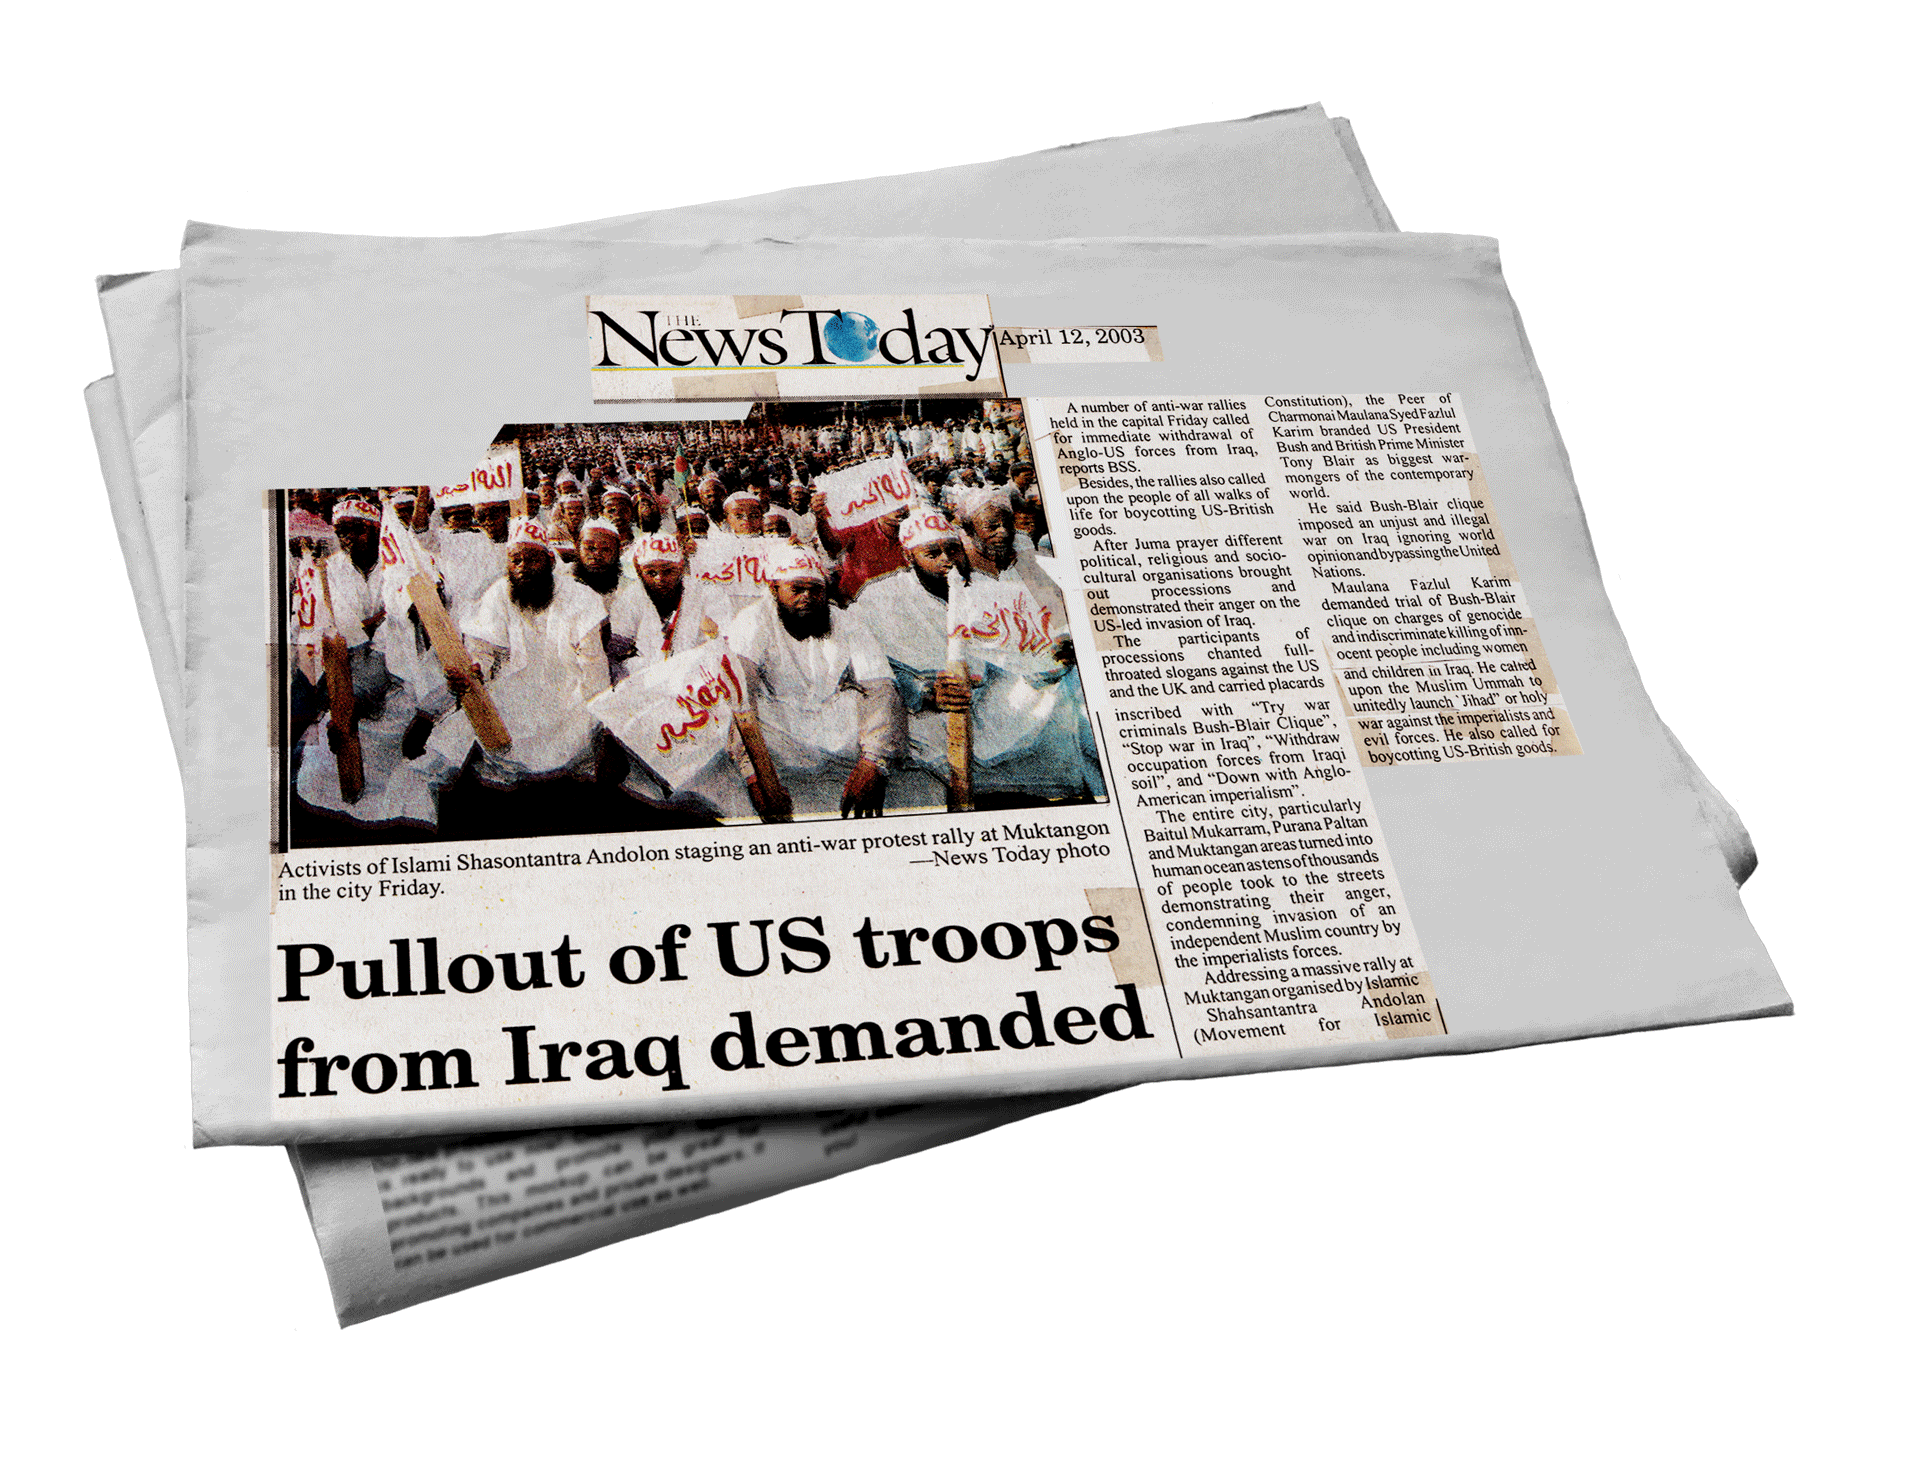 Pullout of US troops from Iraq demanded